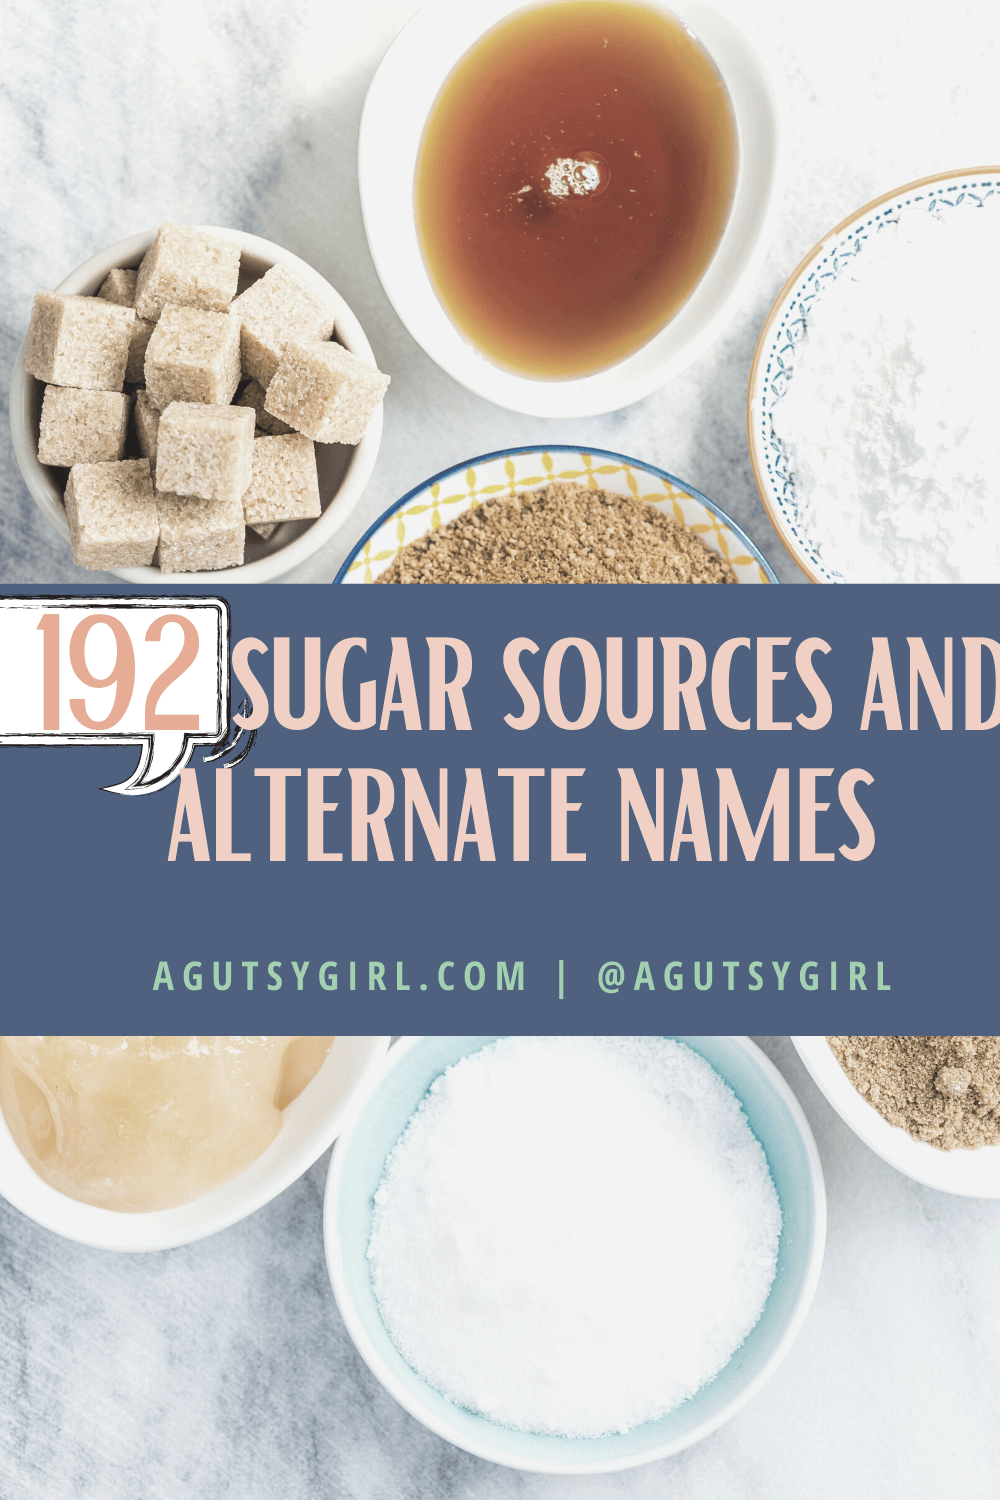 192 sugar sources and alternate names agutsygirl.com #whole30 #guthealth #sugar #iquitsugar